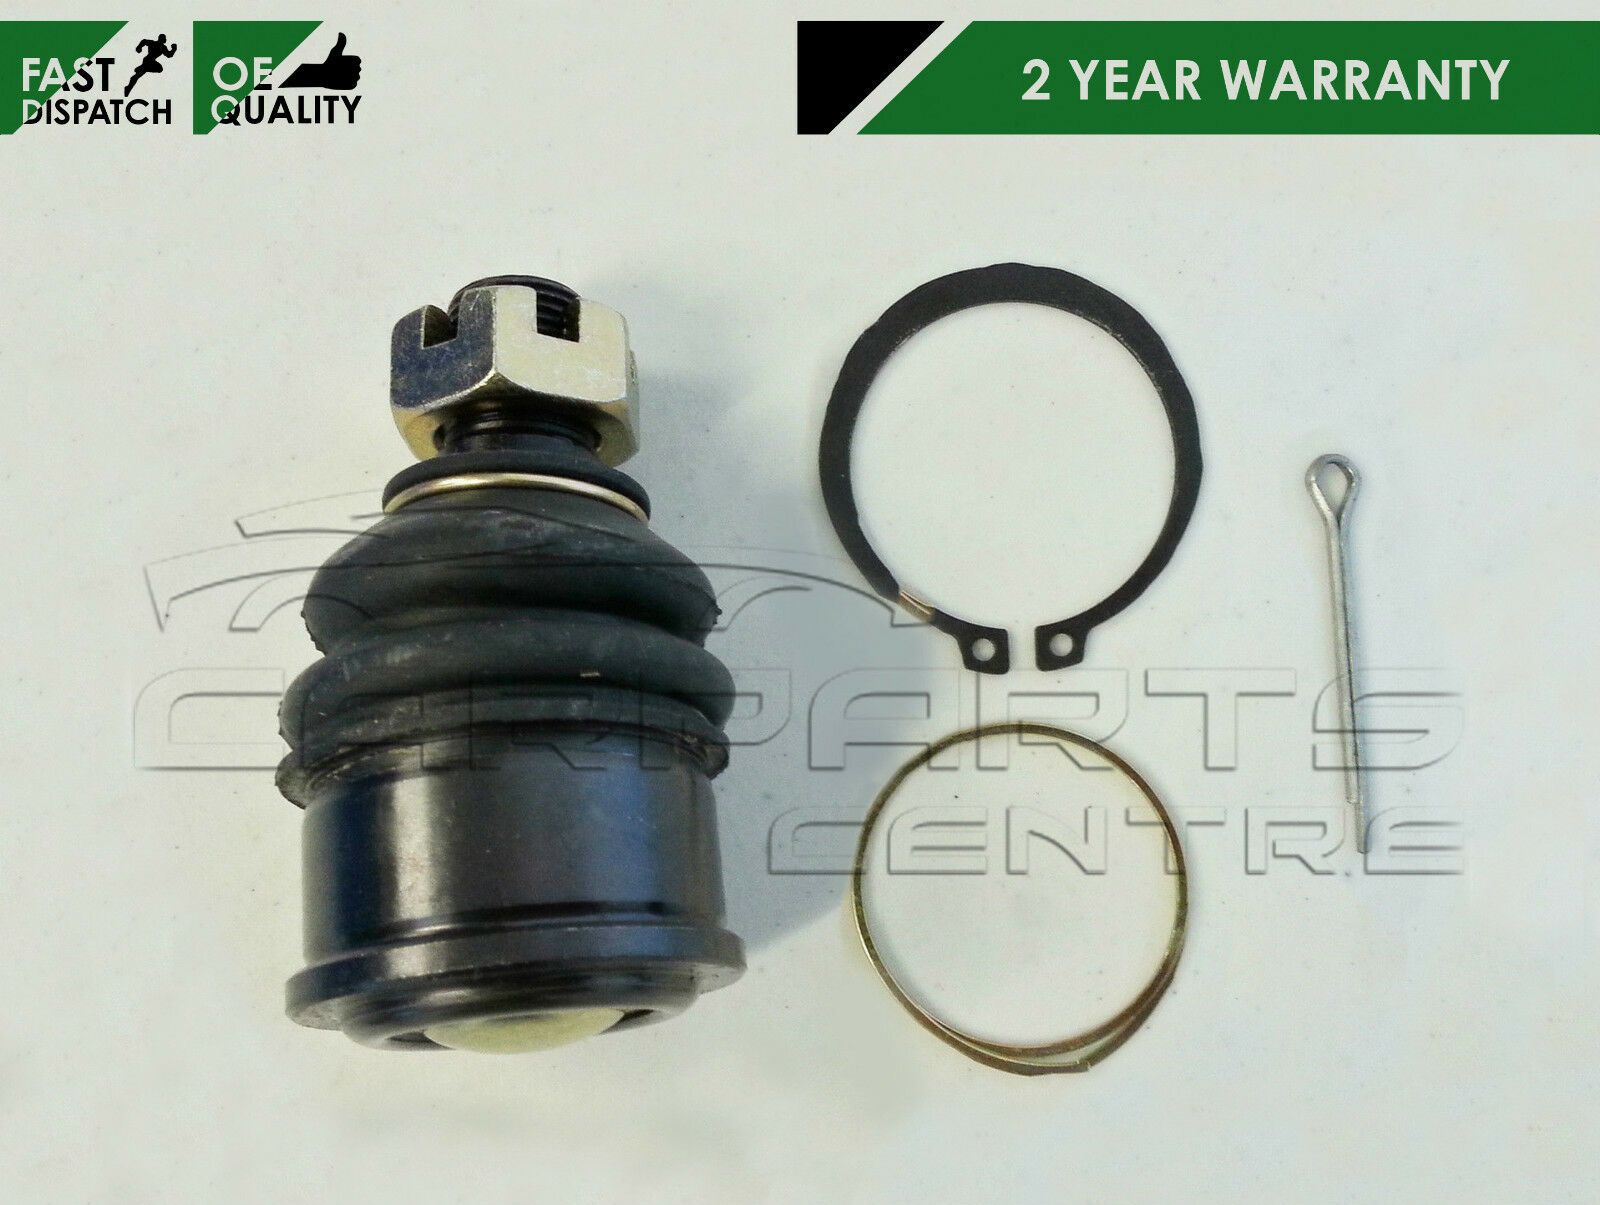 For MAZDA BONGO FRIENDEE FREDA 95 FRONT LOWER CONTROL ARM BALL JOINT